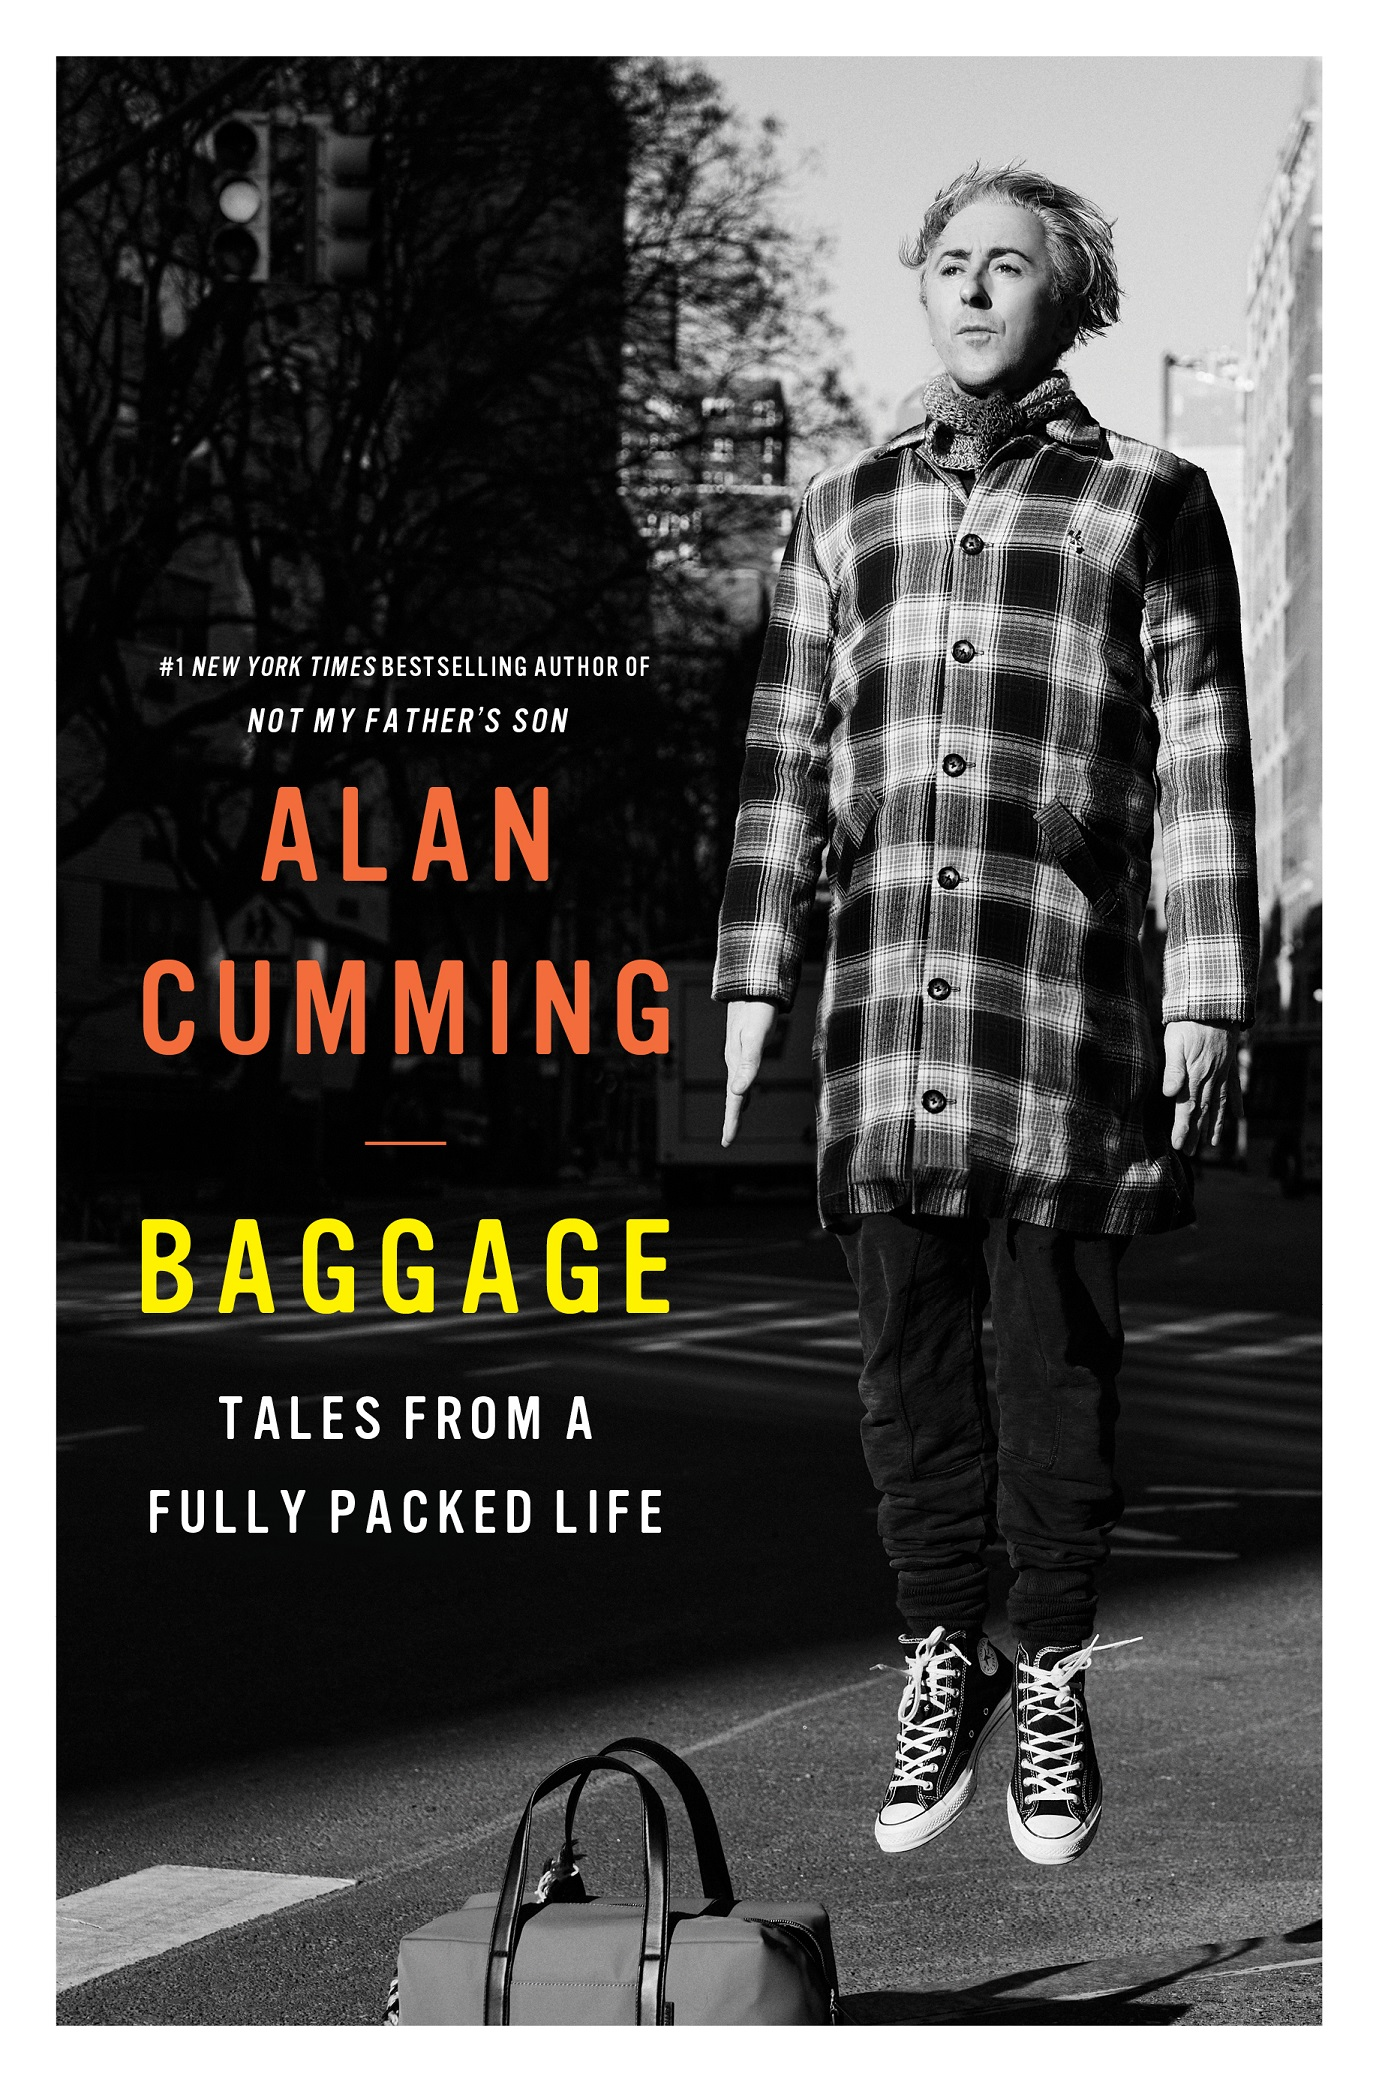 Official U.S. Book Launch: Baggage by Alan Cumming